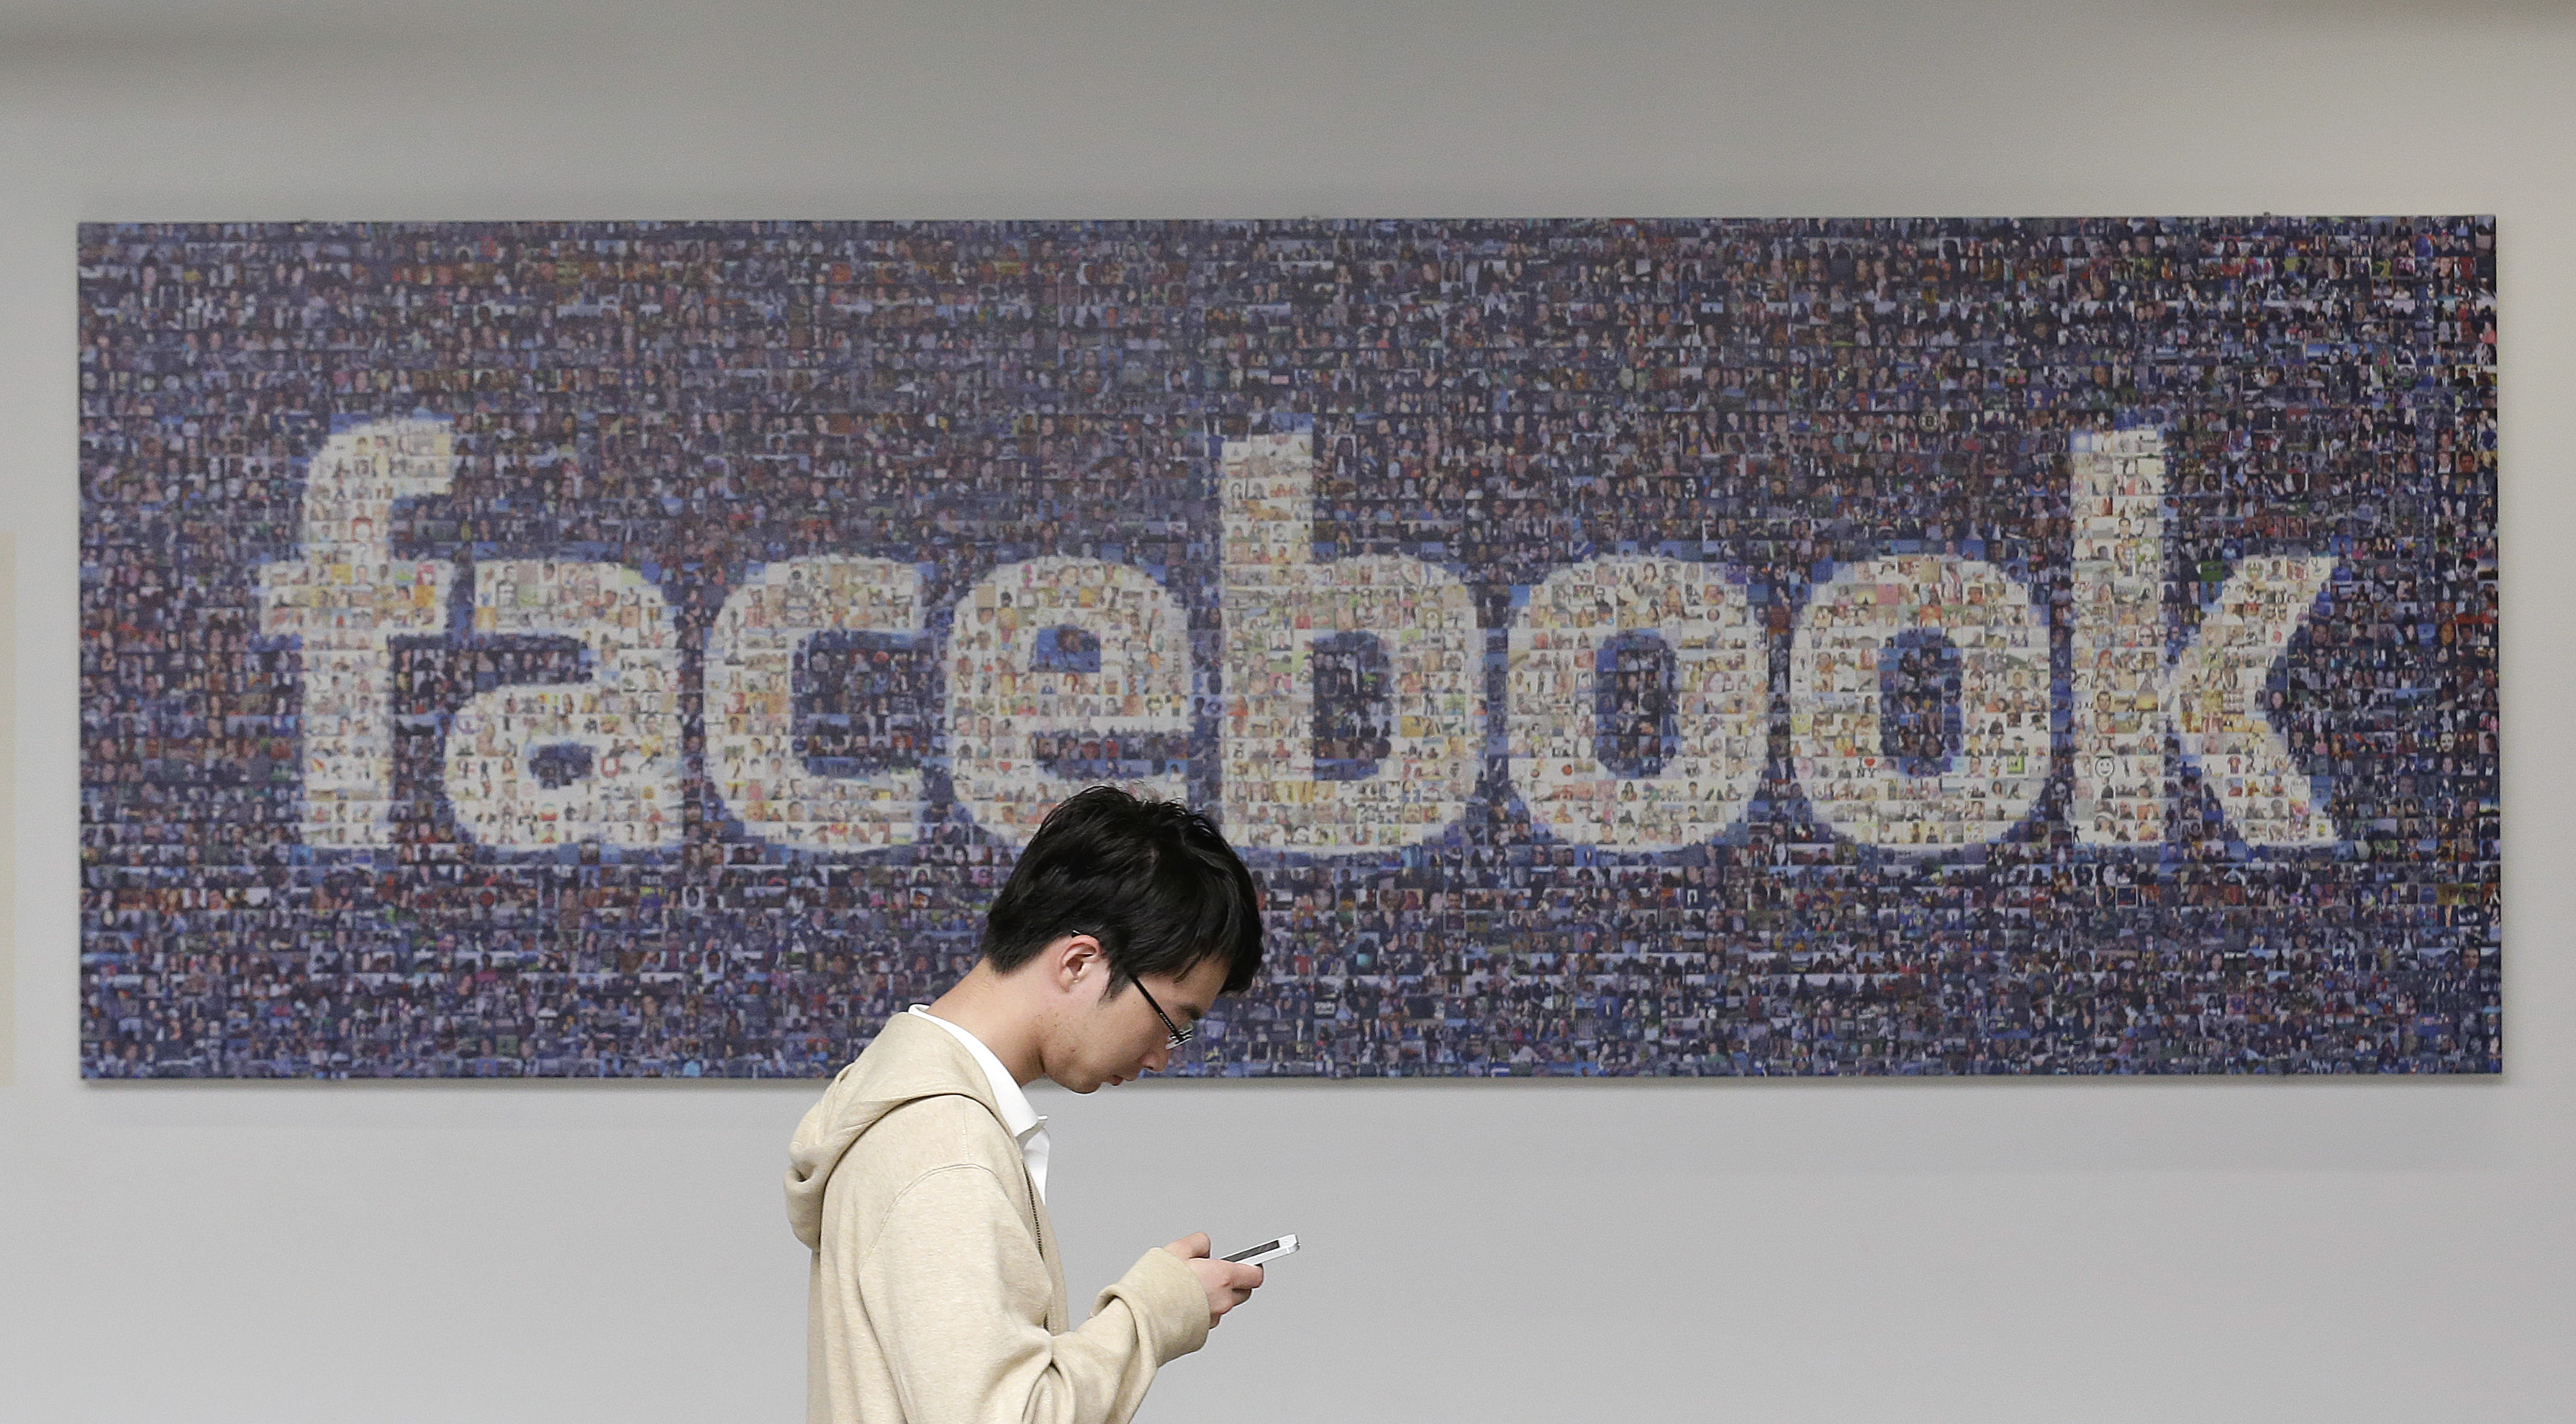 Facebook 'Drug Task Force To Begin Monitoring All Messages October 1st' 2014 for Marijuana, Narcotics Article is Fake